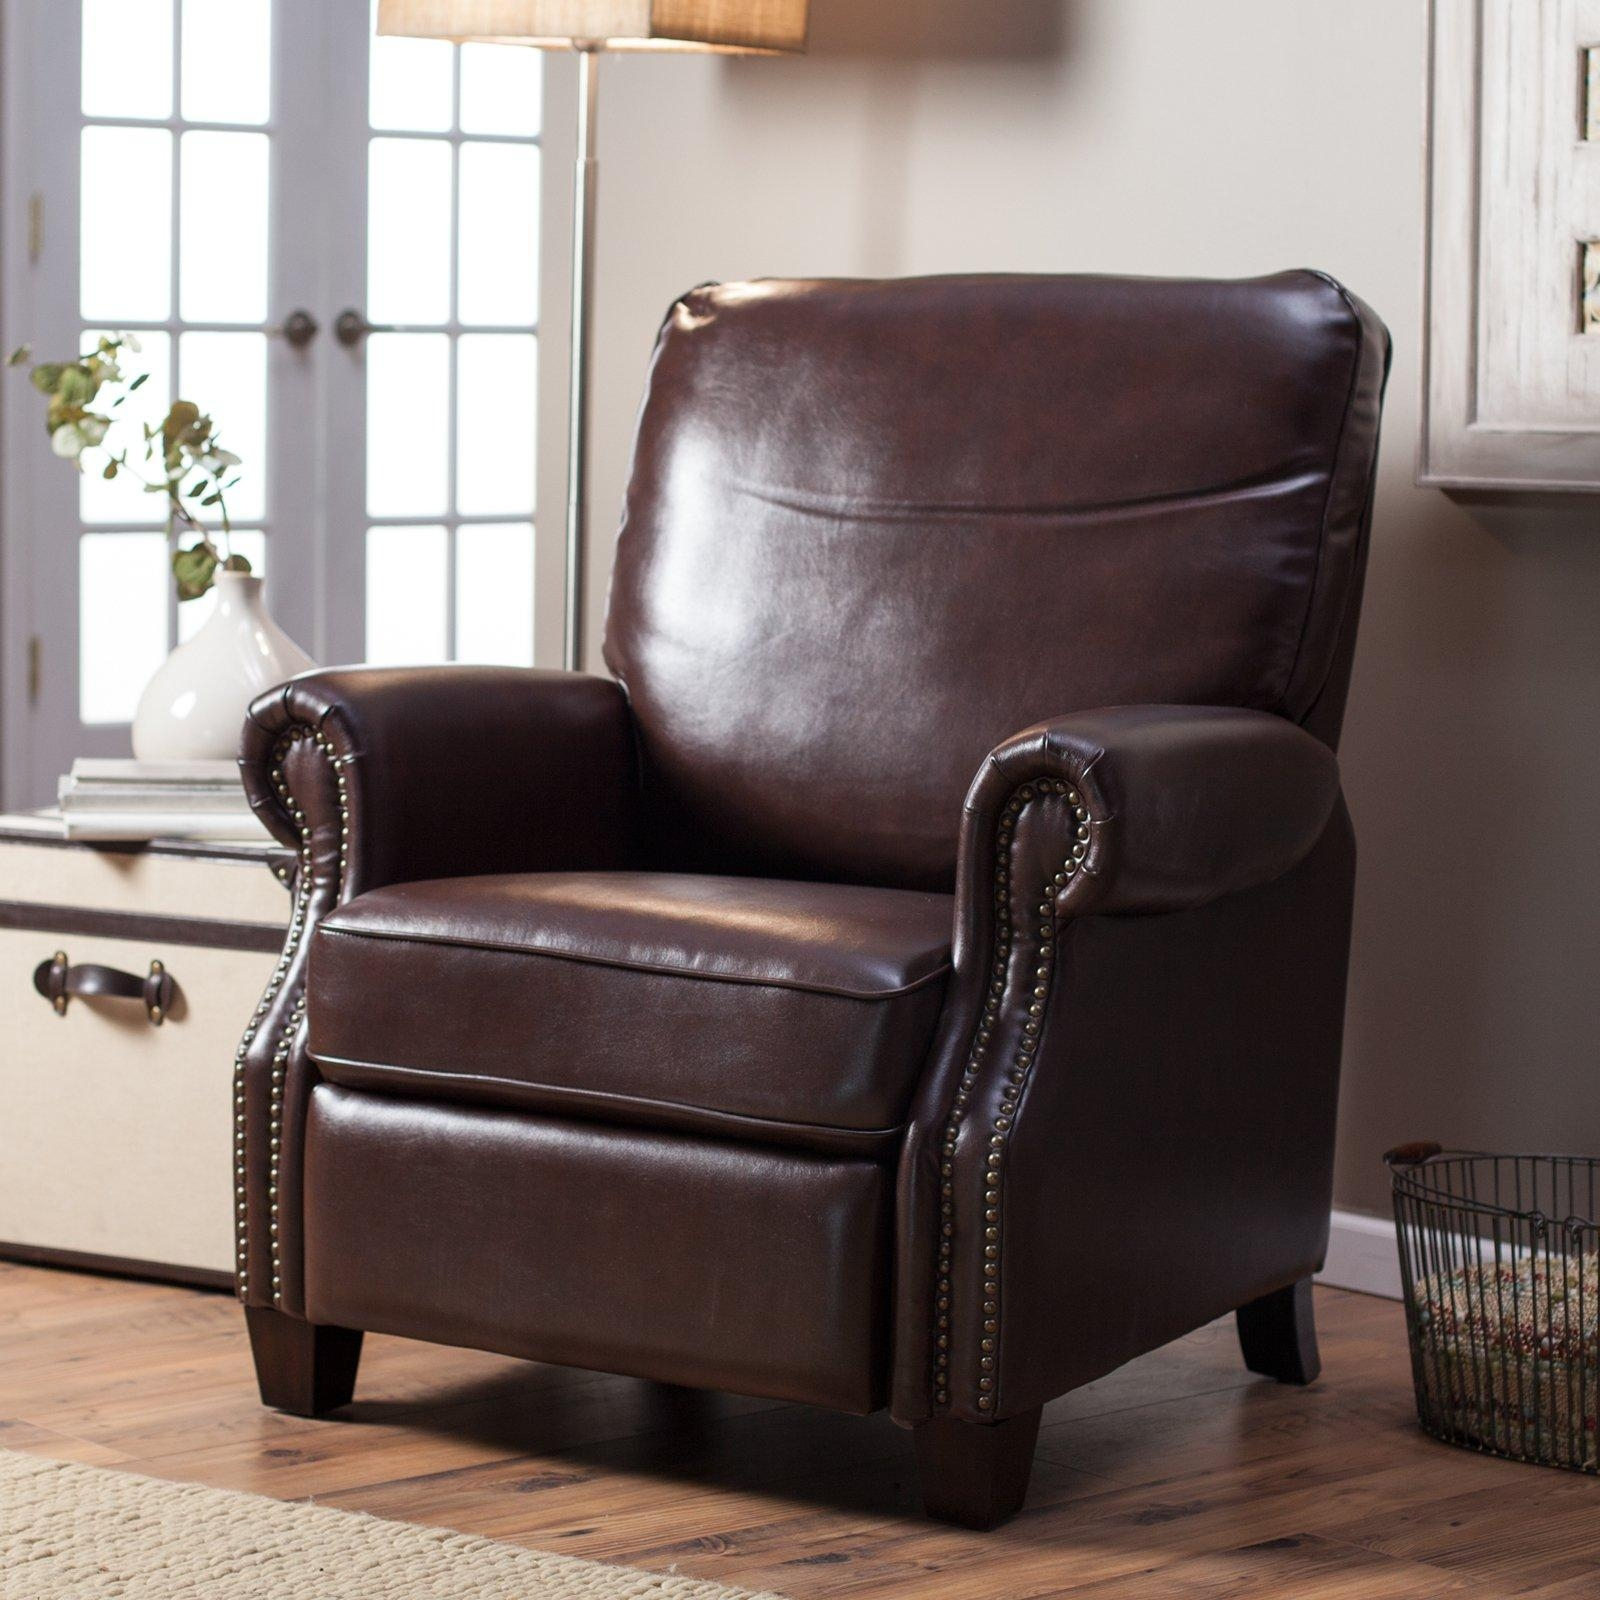 Abbyson Living Lorraine Leather Pushback Recliner | Hayneedle Pertaining To Abbyson Recliners (Image 8 of 20)